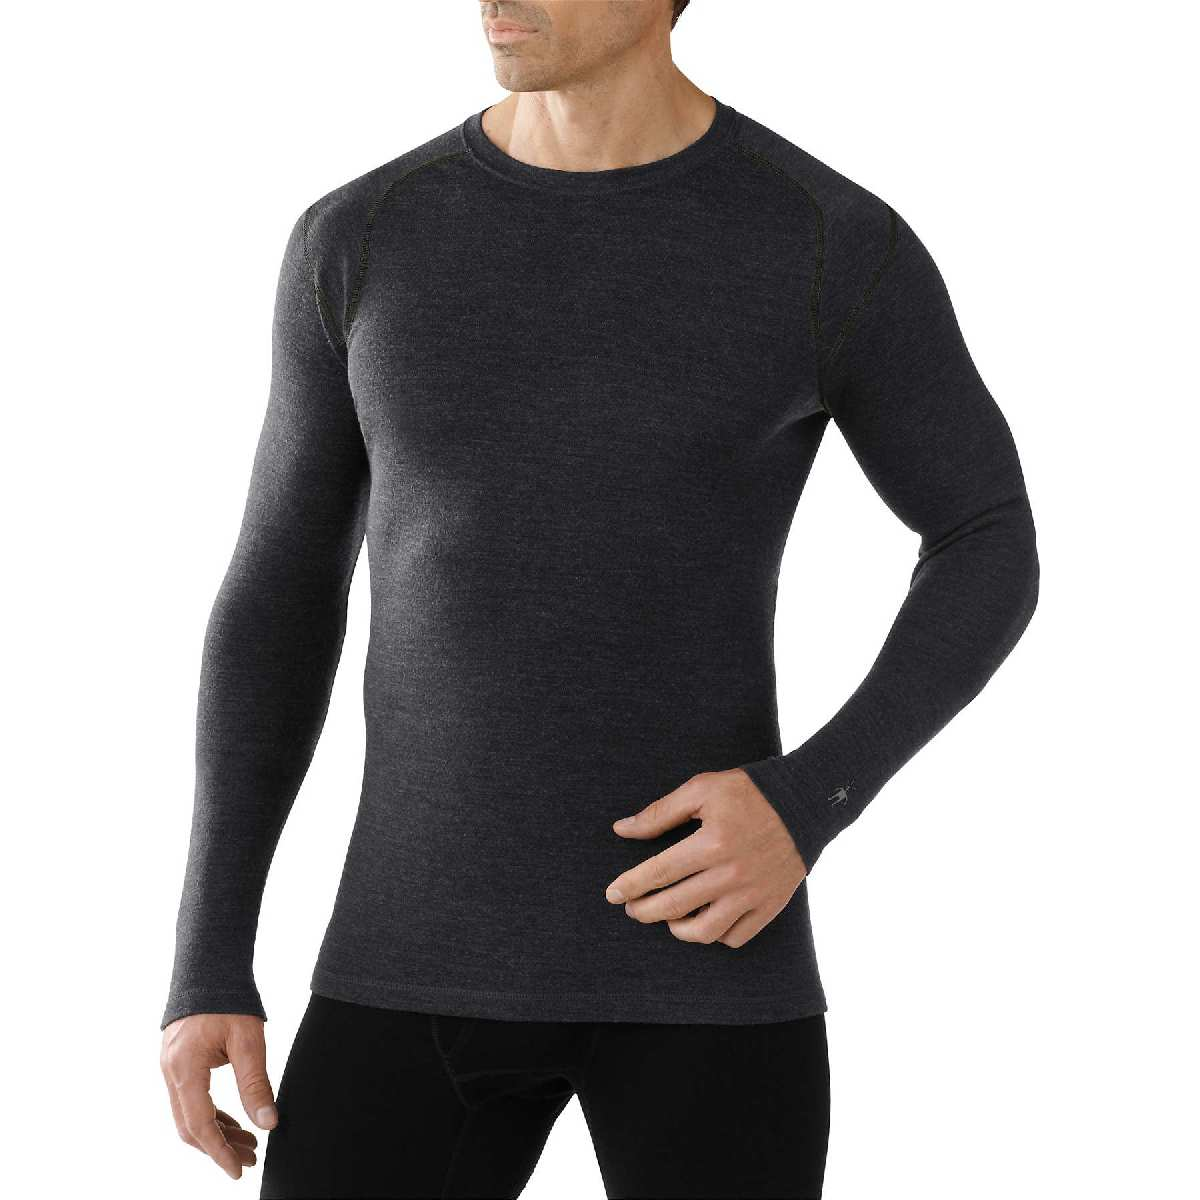 SmartWool NTS Mid 250 Crew Long Sleeve Base Layer Men's Size XL CharcoalHeather U.S.A. & Canada